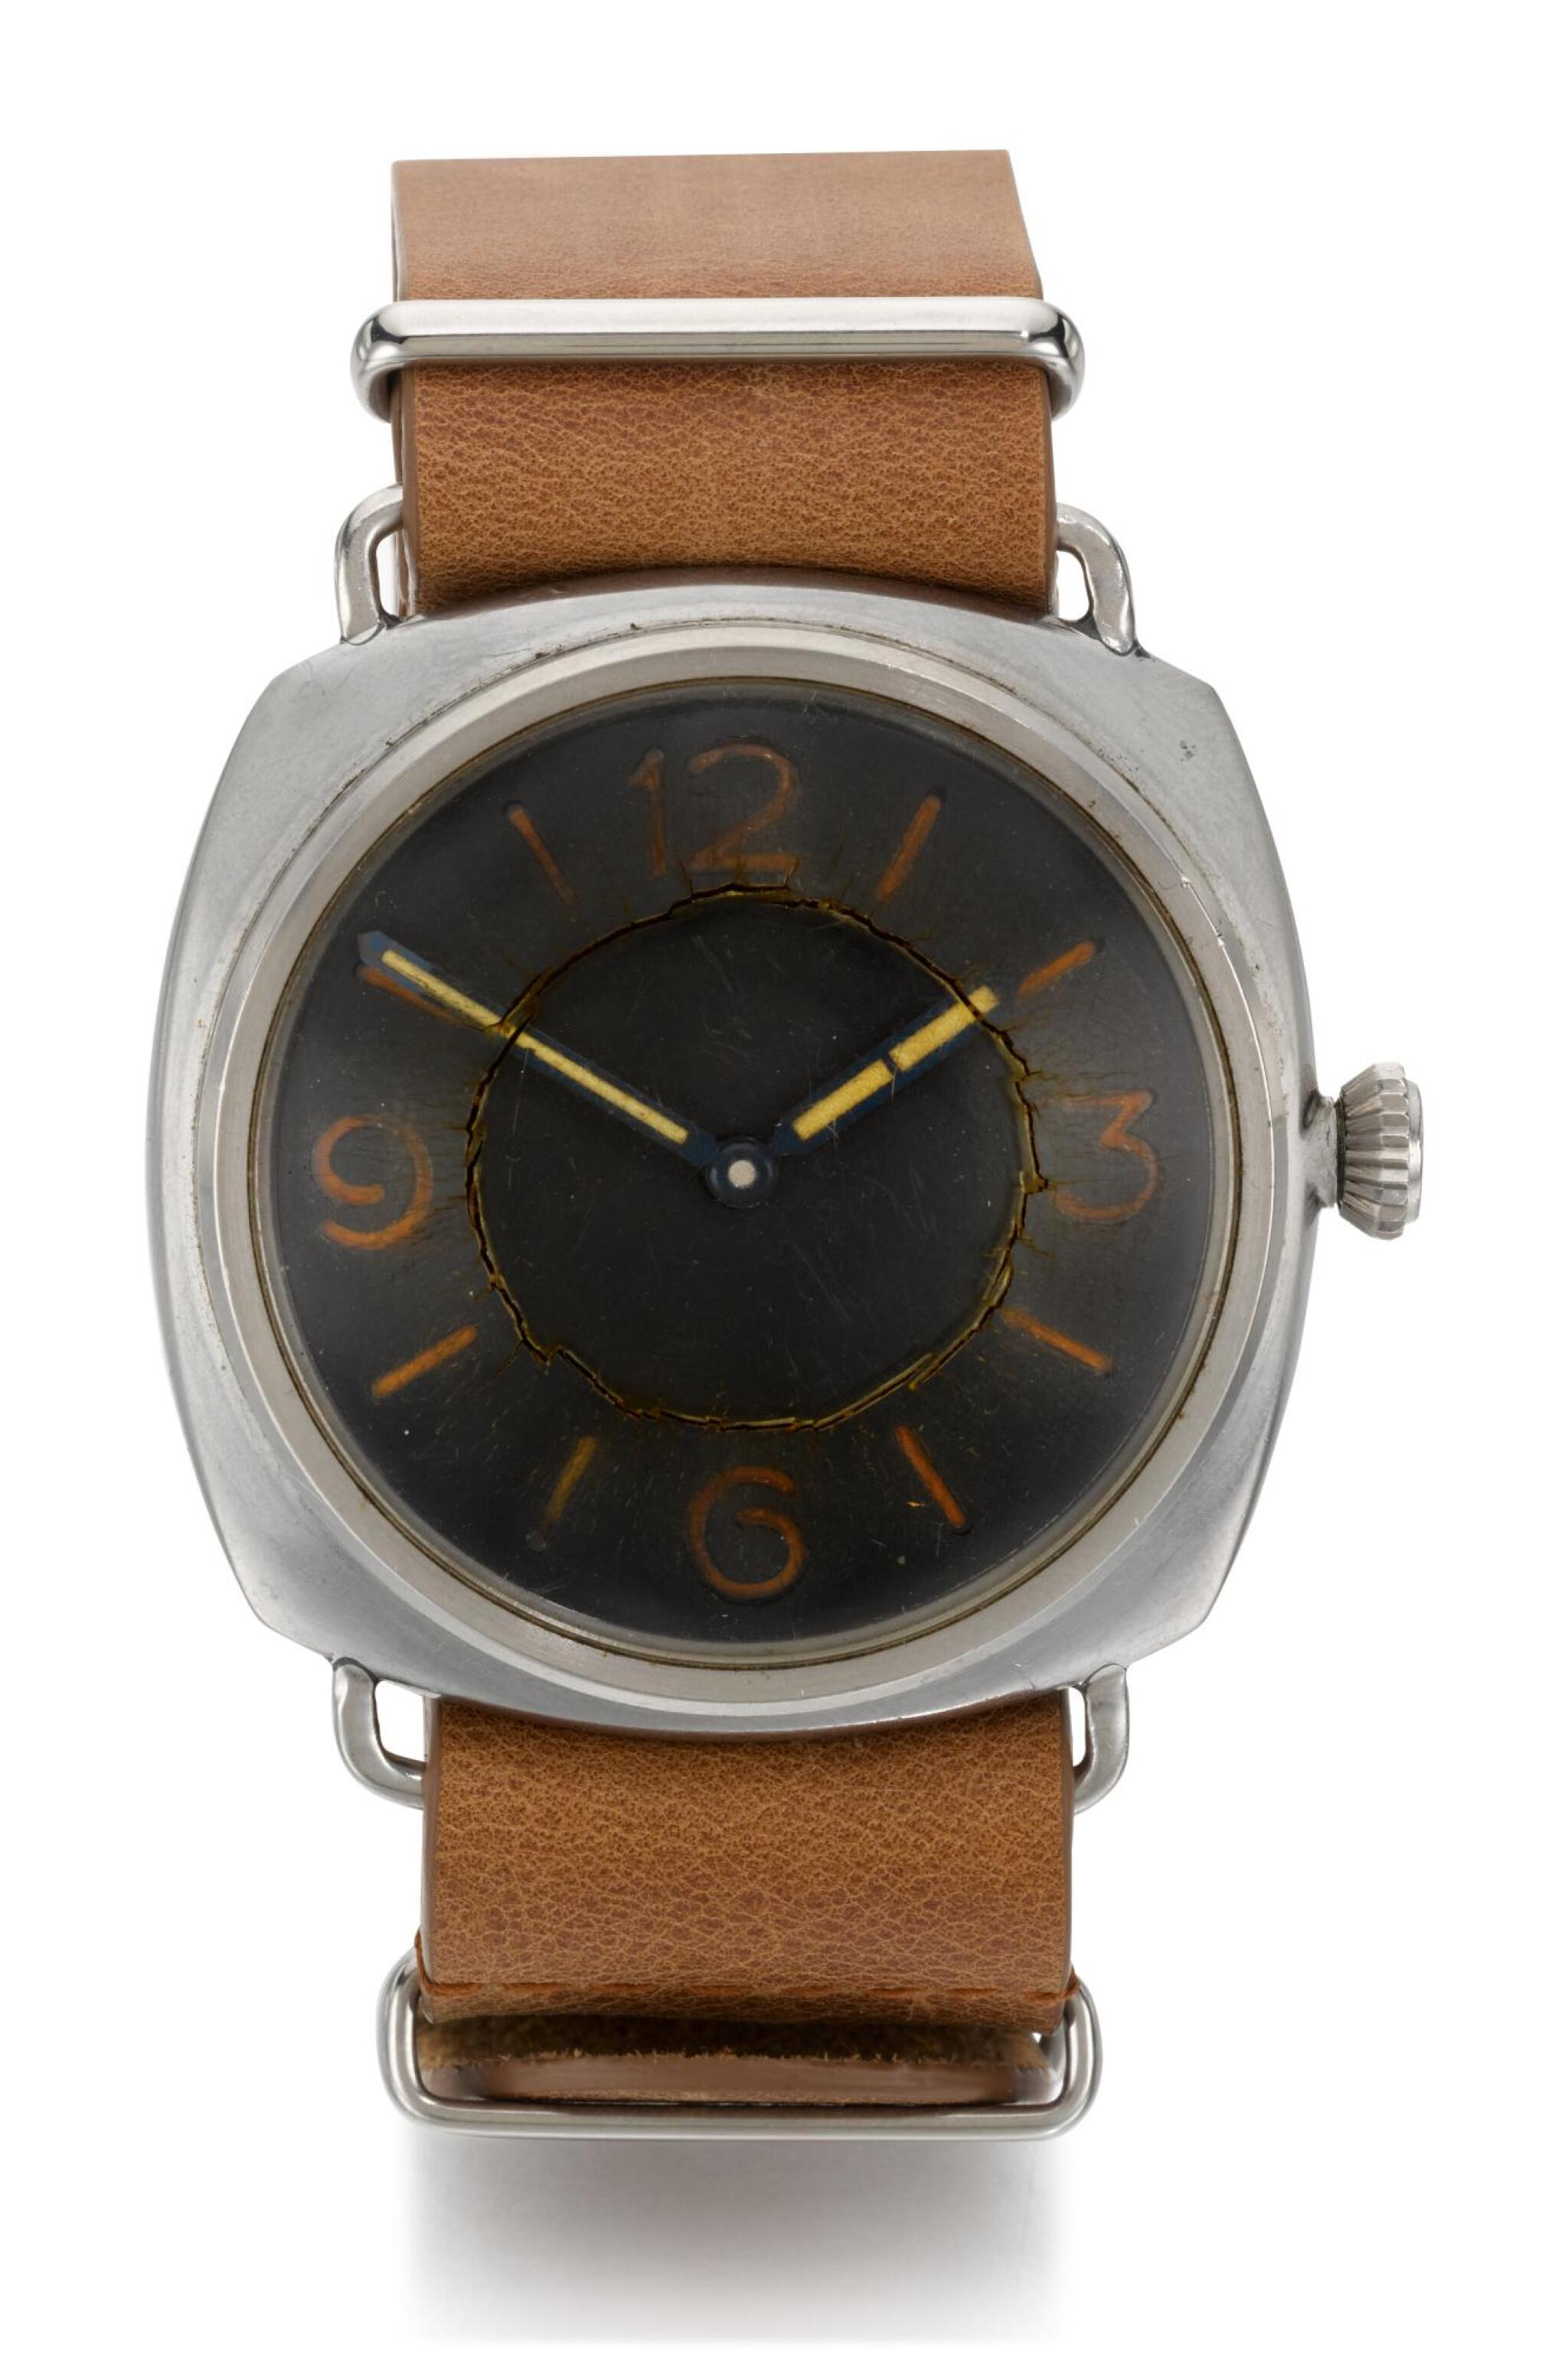 View full screen - View 1 of Lot 8. PANERAI/ROLEX,  ROLEX FOR PANERAI: RADIOMIR   REFERENCE 3646  MILITARY STAINLESS STEEL DIVER'S WATCH,  CIRCA 1943.